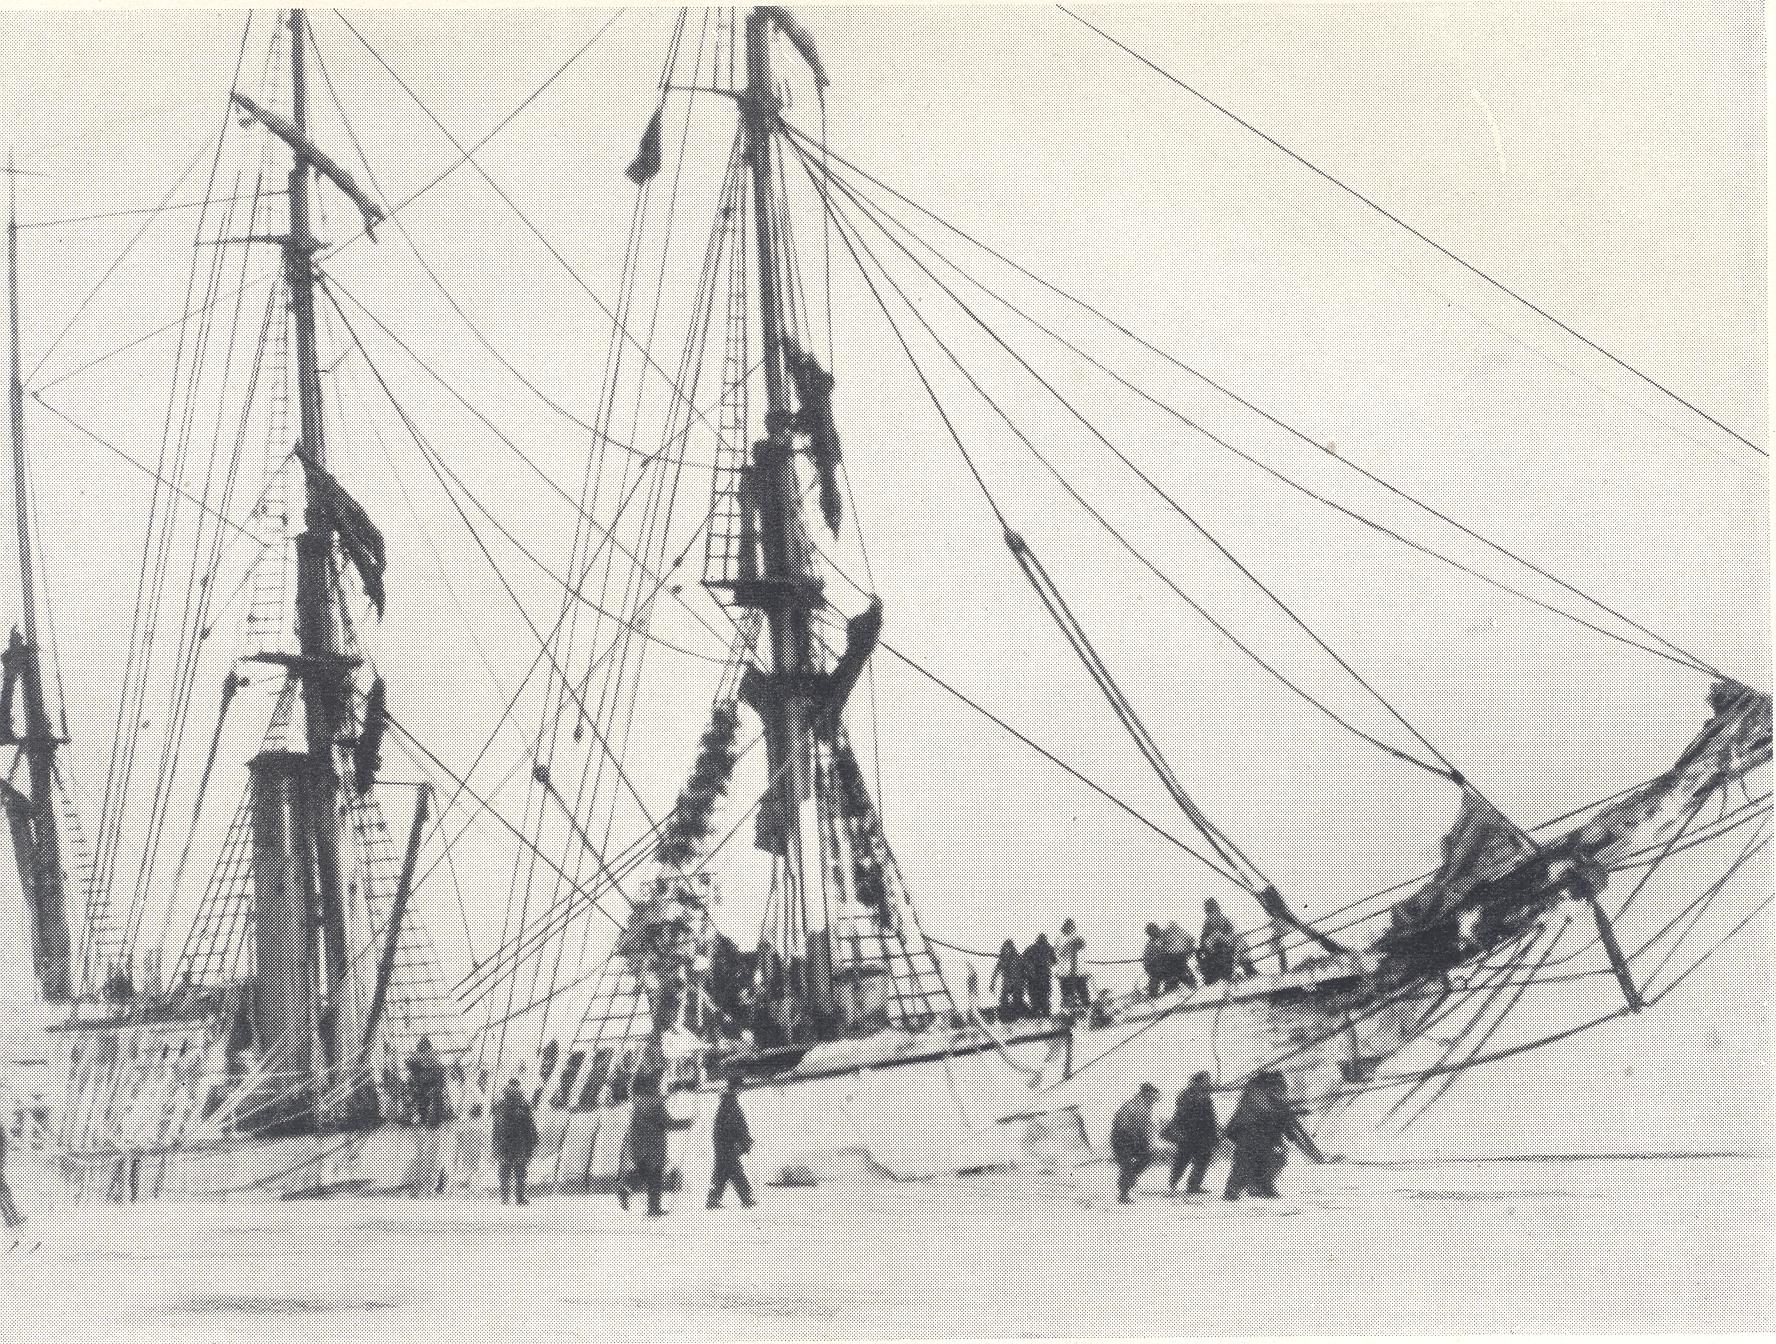 12 - The City of New York in the ice (Beyond the Barrier With Byrd, by Lieut. Harry Adams, USN)